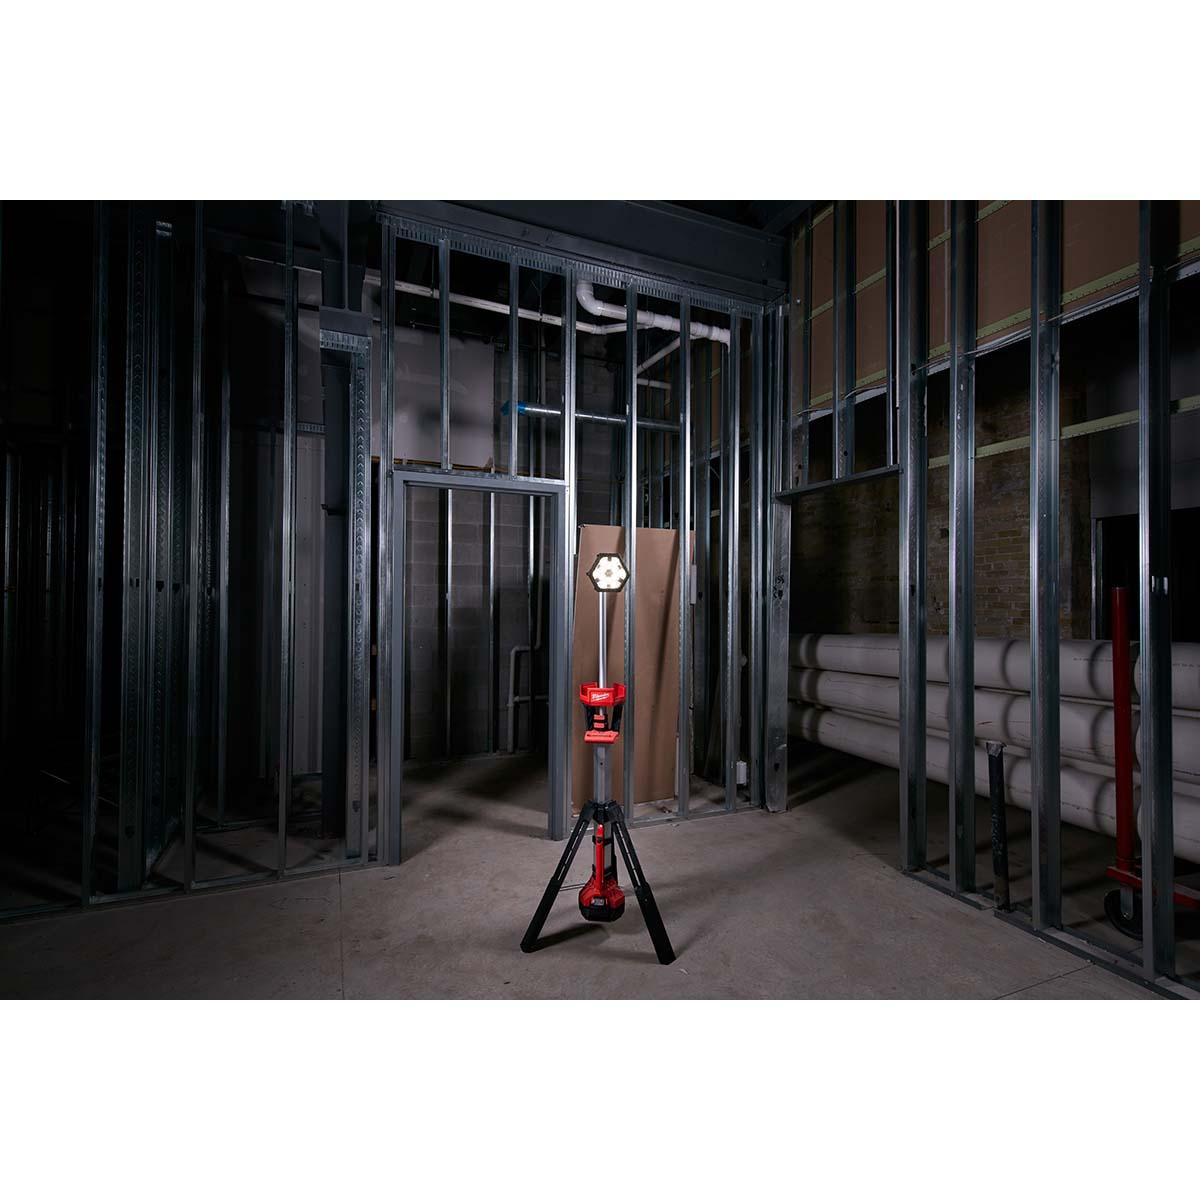 "M18â""¢ ROCKETâ""¢ LED Tower Light"